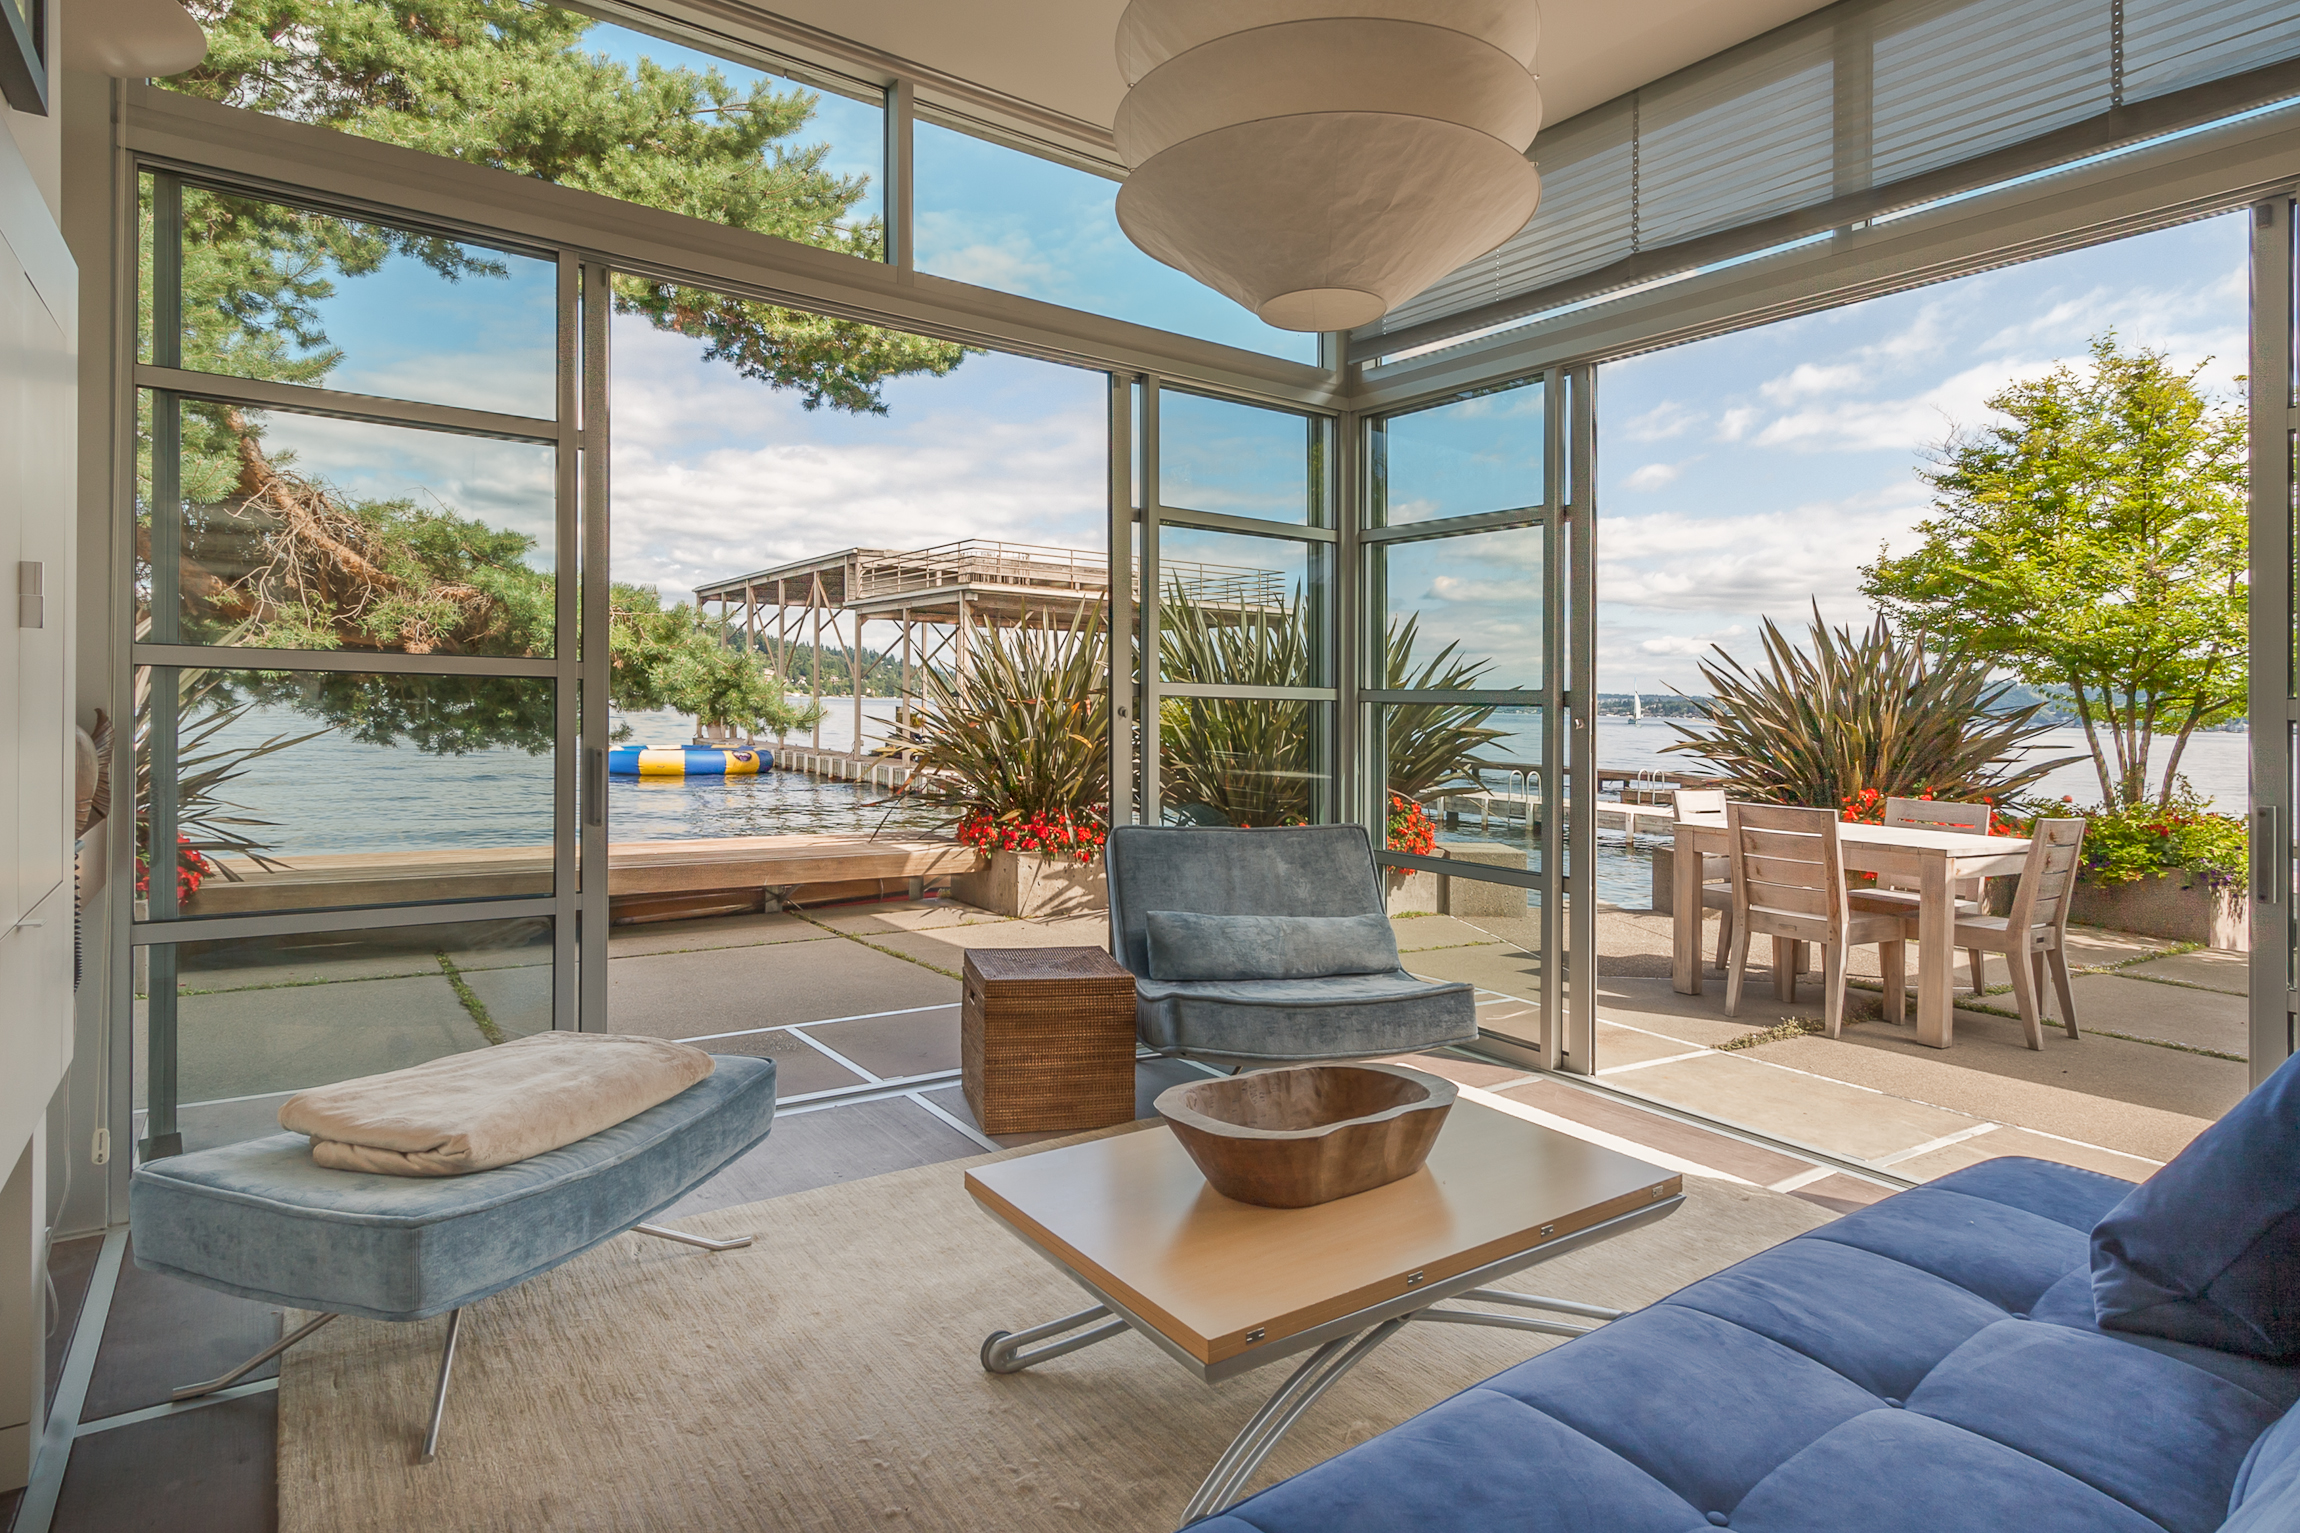 Undisclosed Location, Seattle  Offered at $7,980,000   LEARN MORE